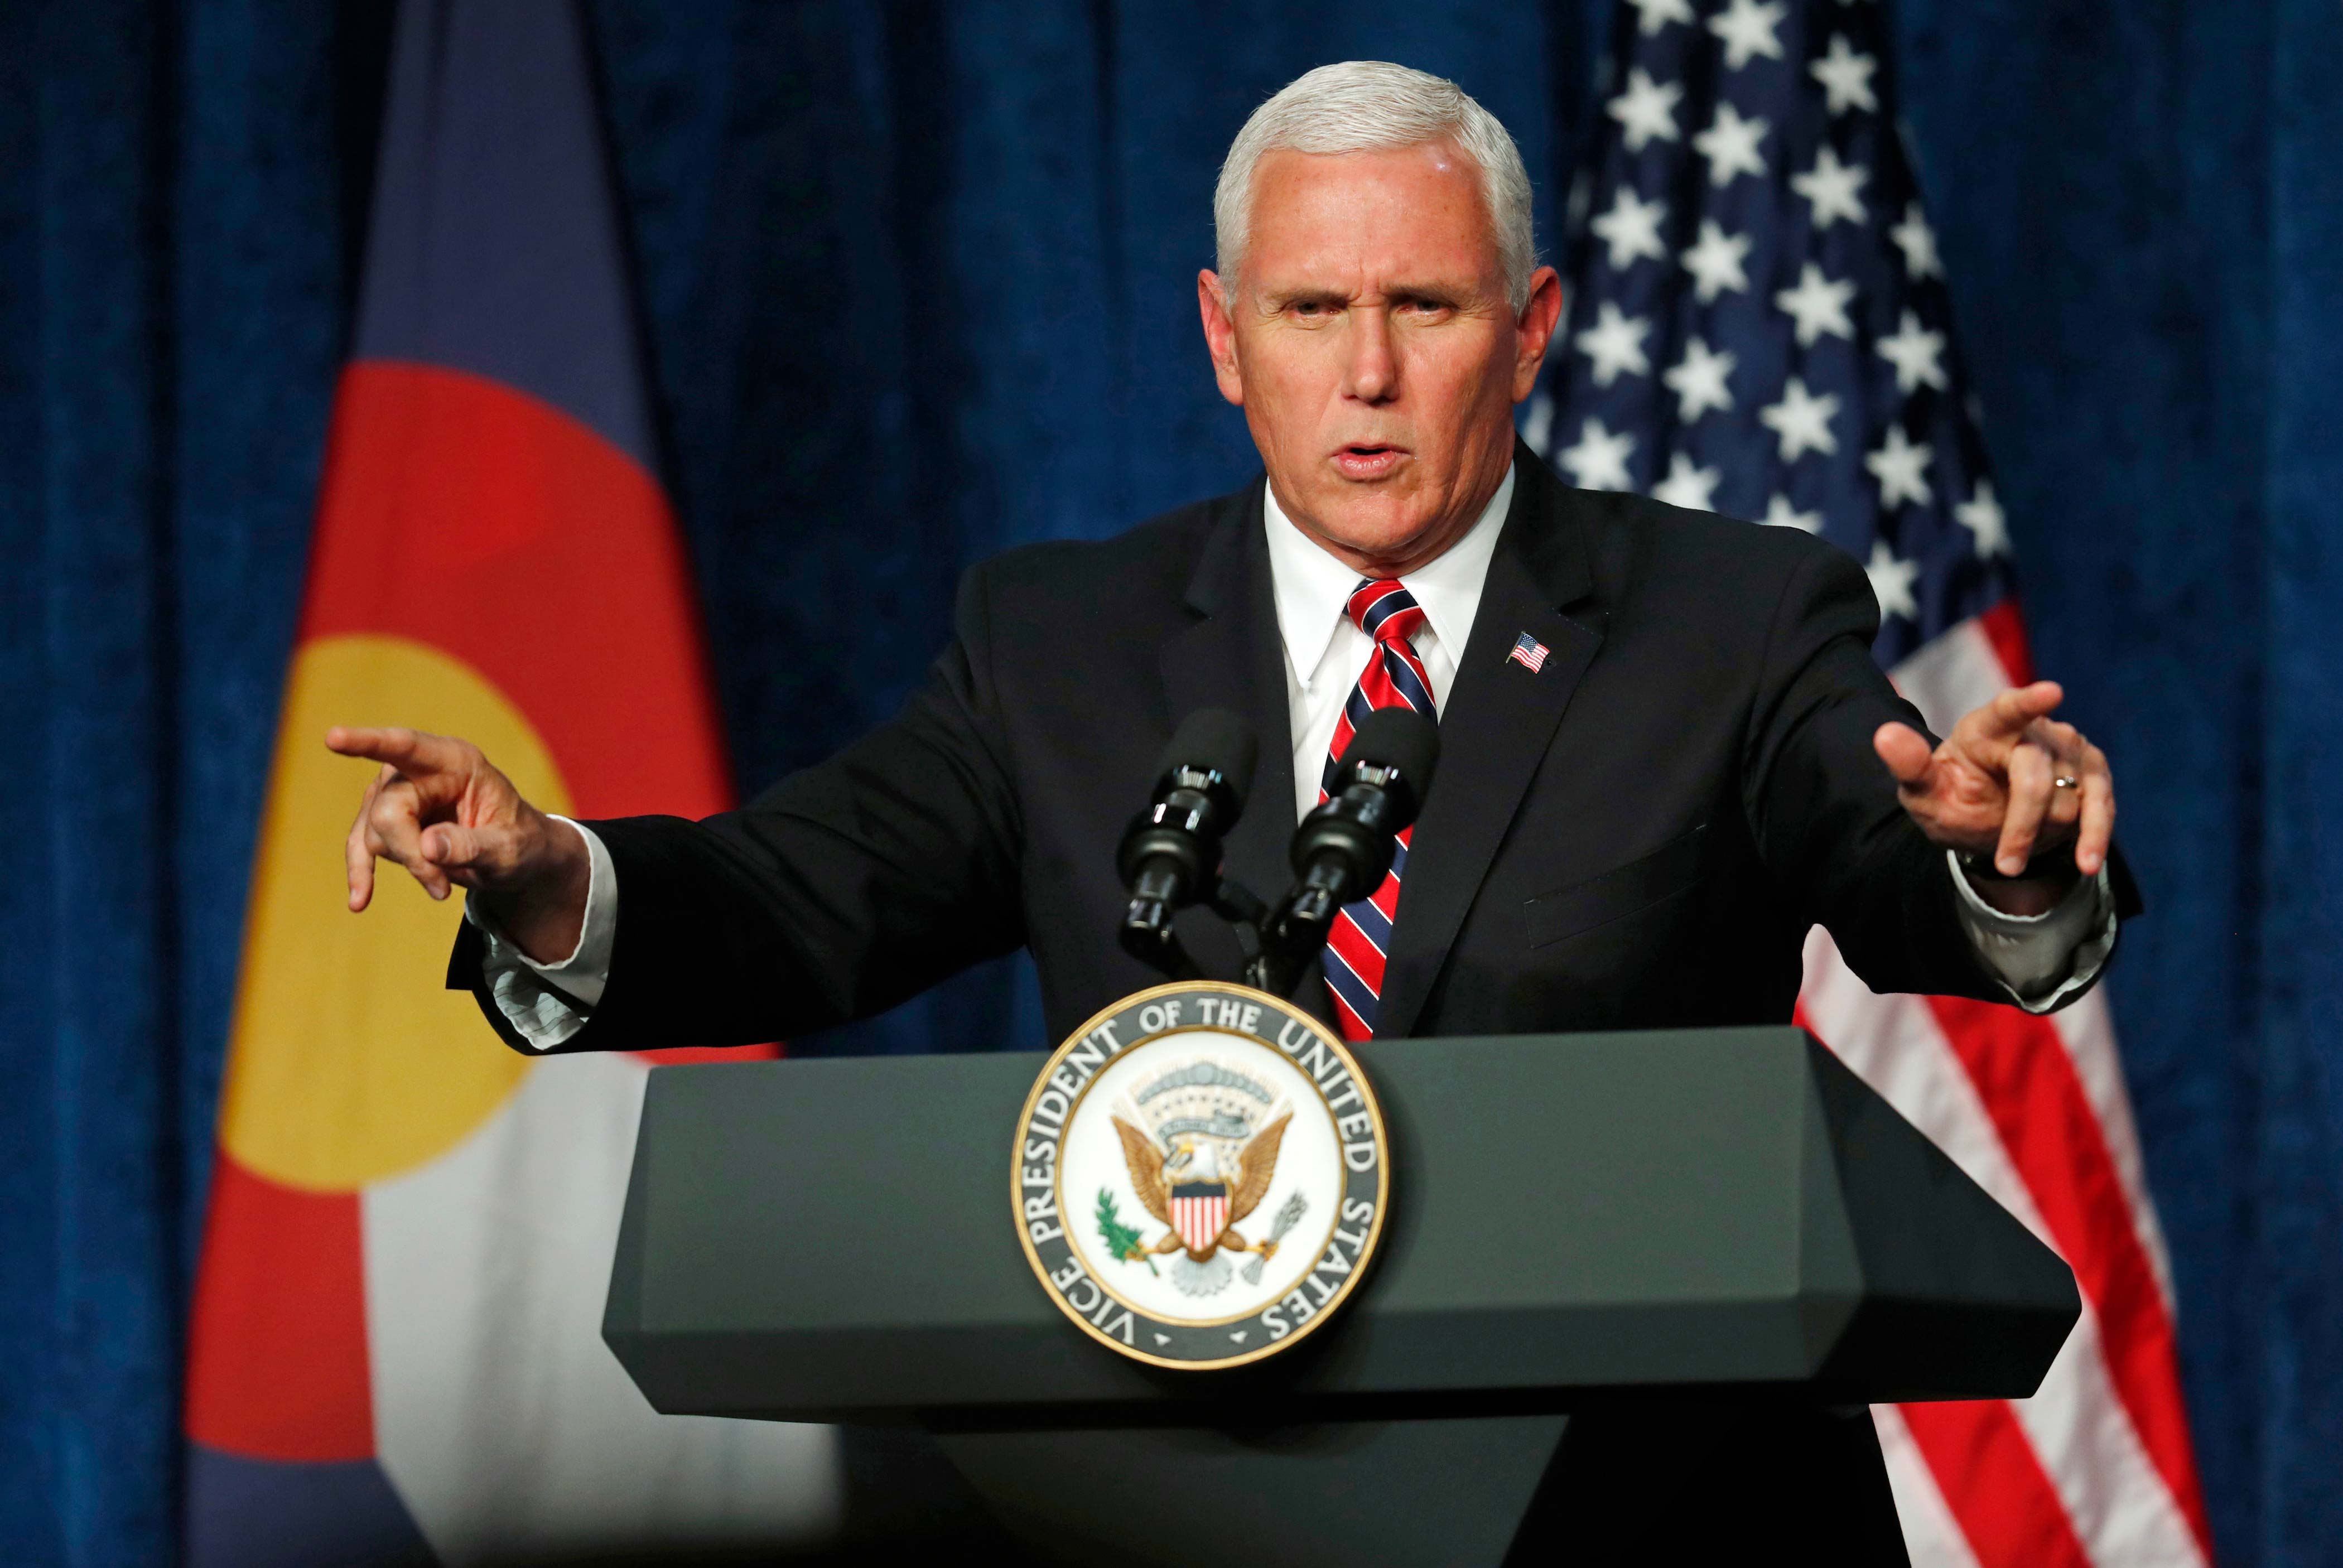 <p>Vice President Mike Pence speaks during a fundraising event for the Republican Party on Thursday, Oct. 26, 2017, in Greenwood Village, Colo.</p>